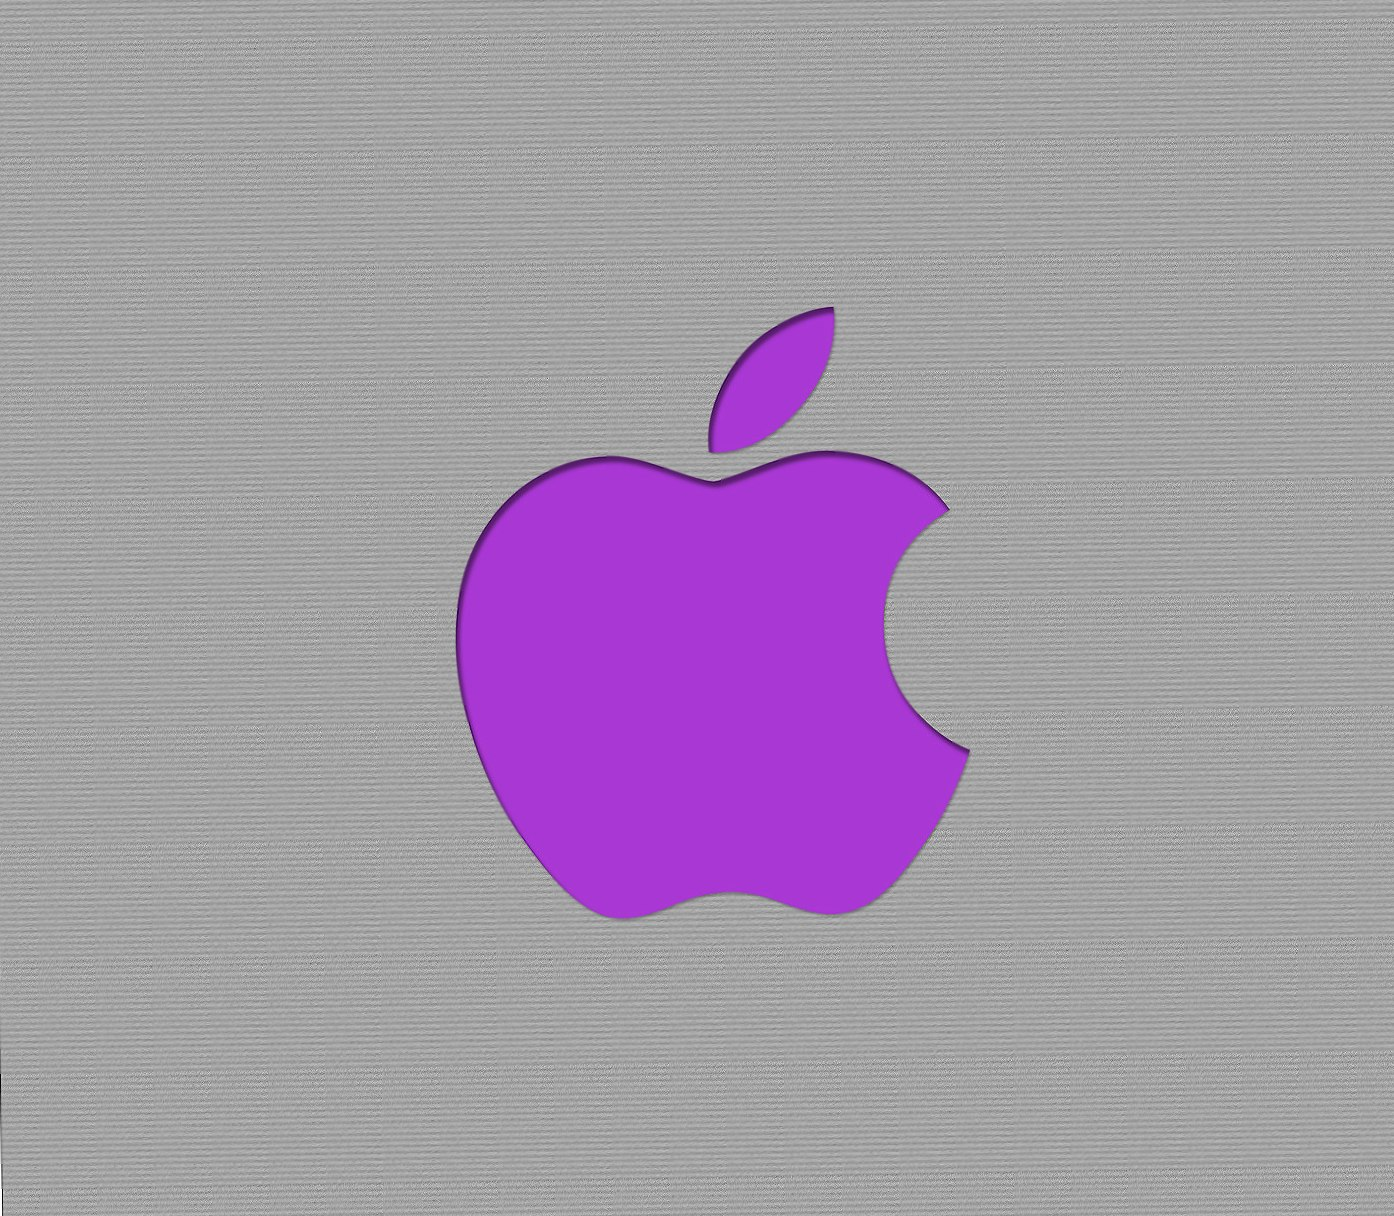 purple apple logo wallpapers HD quality